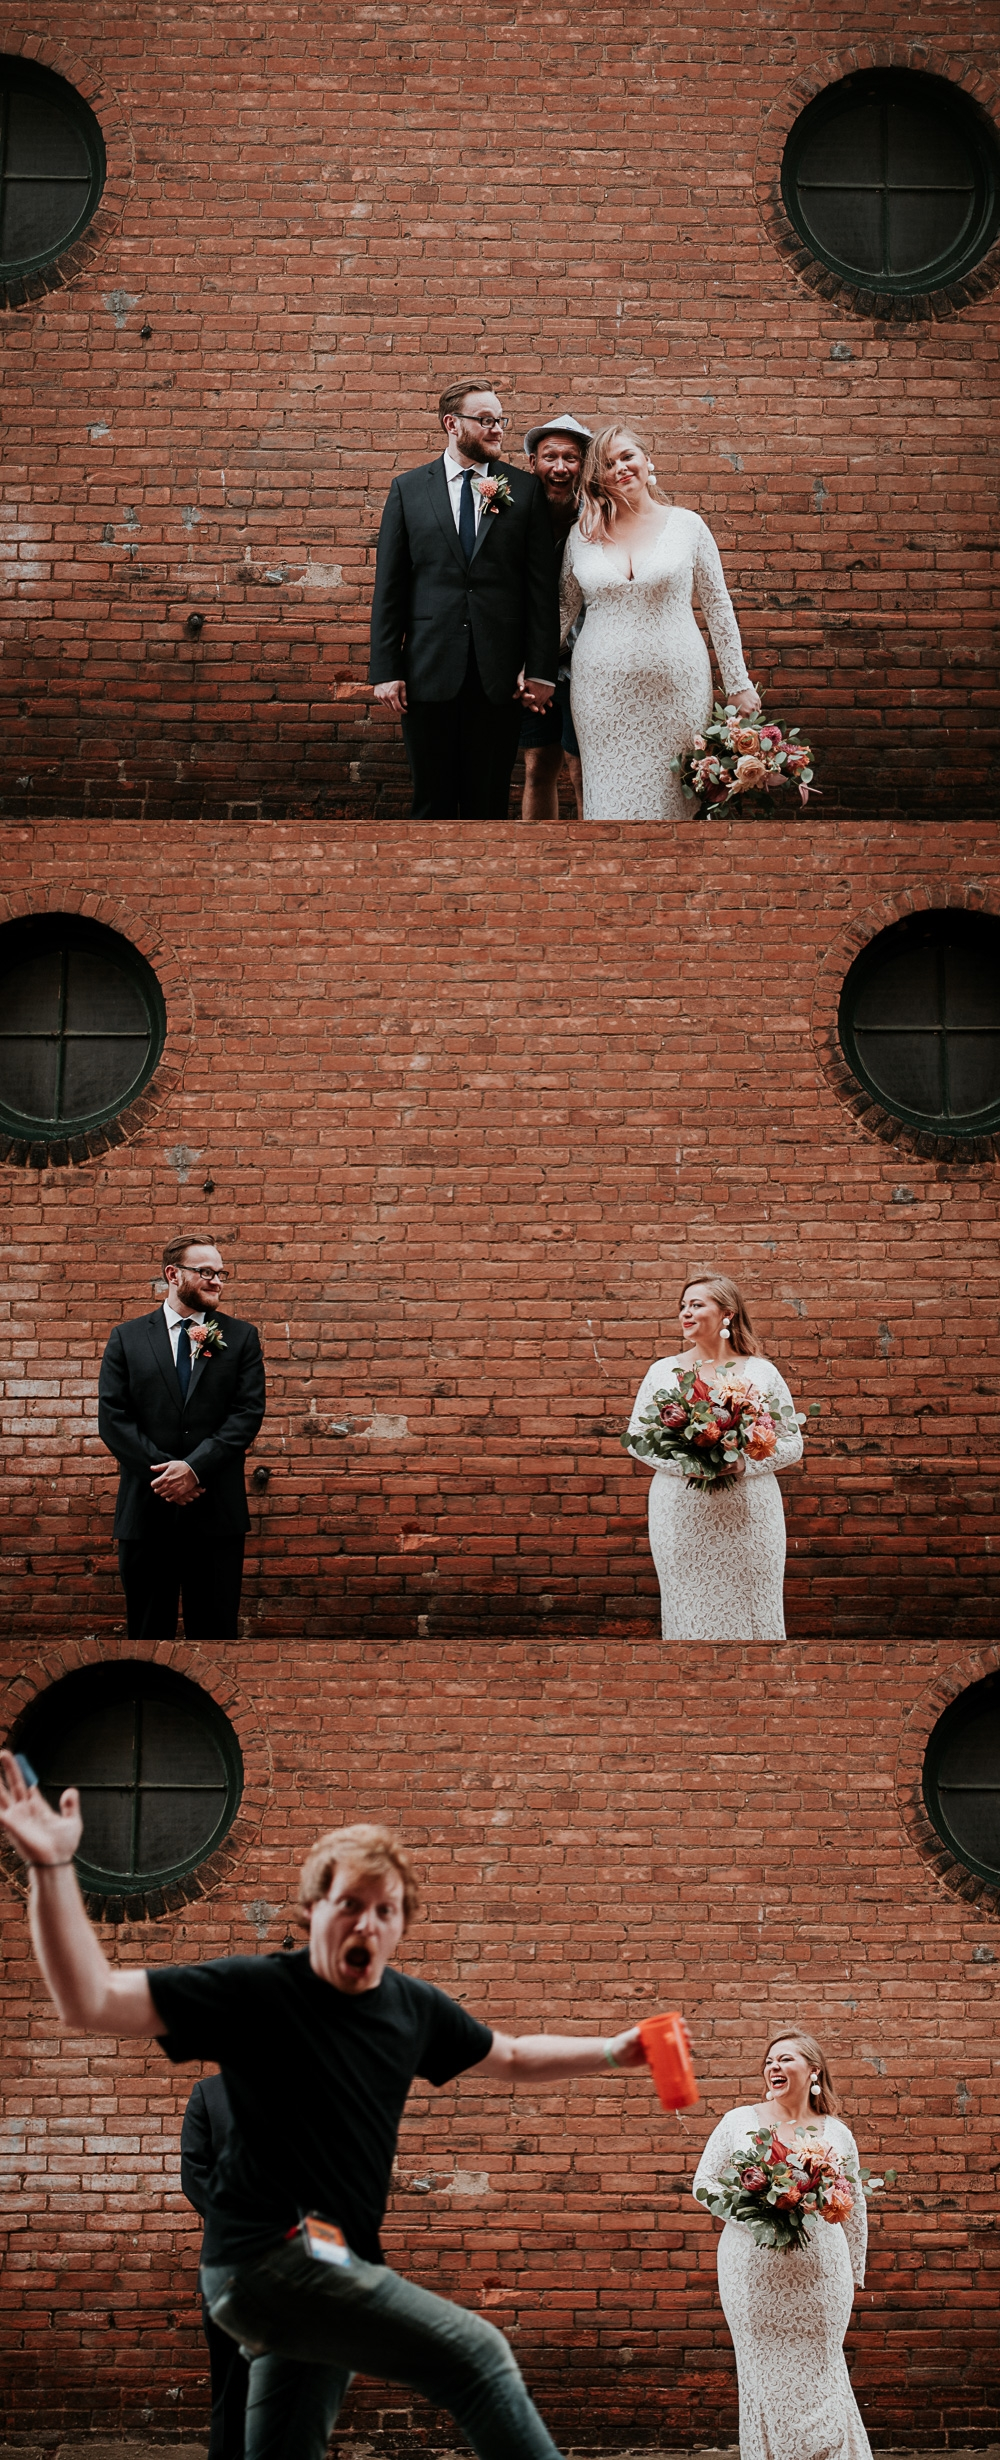 zach and rosalie st. louis wedding photographer 17.jpg